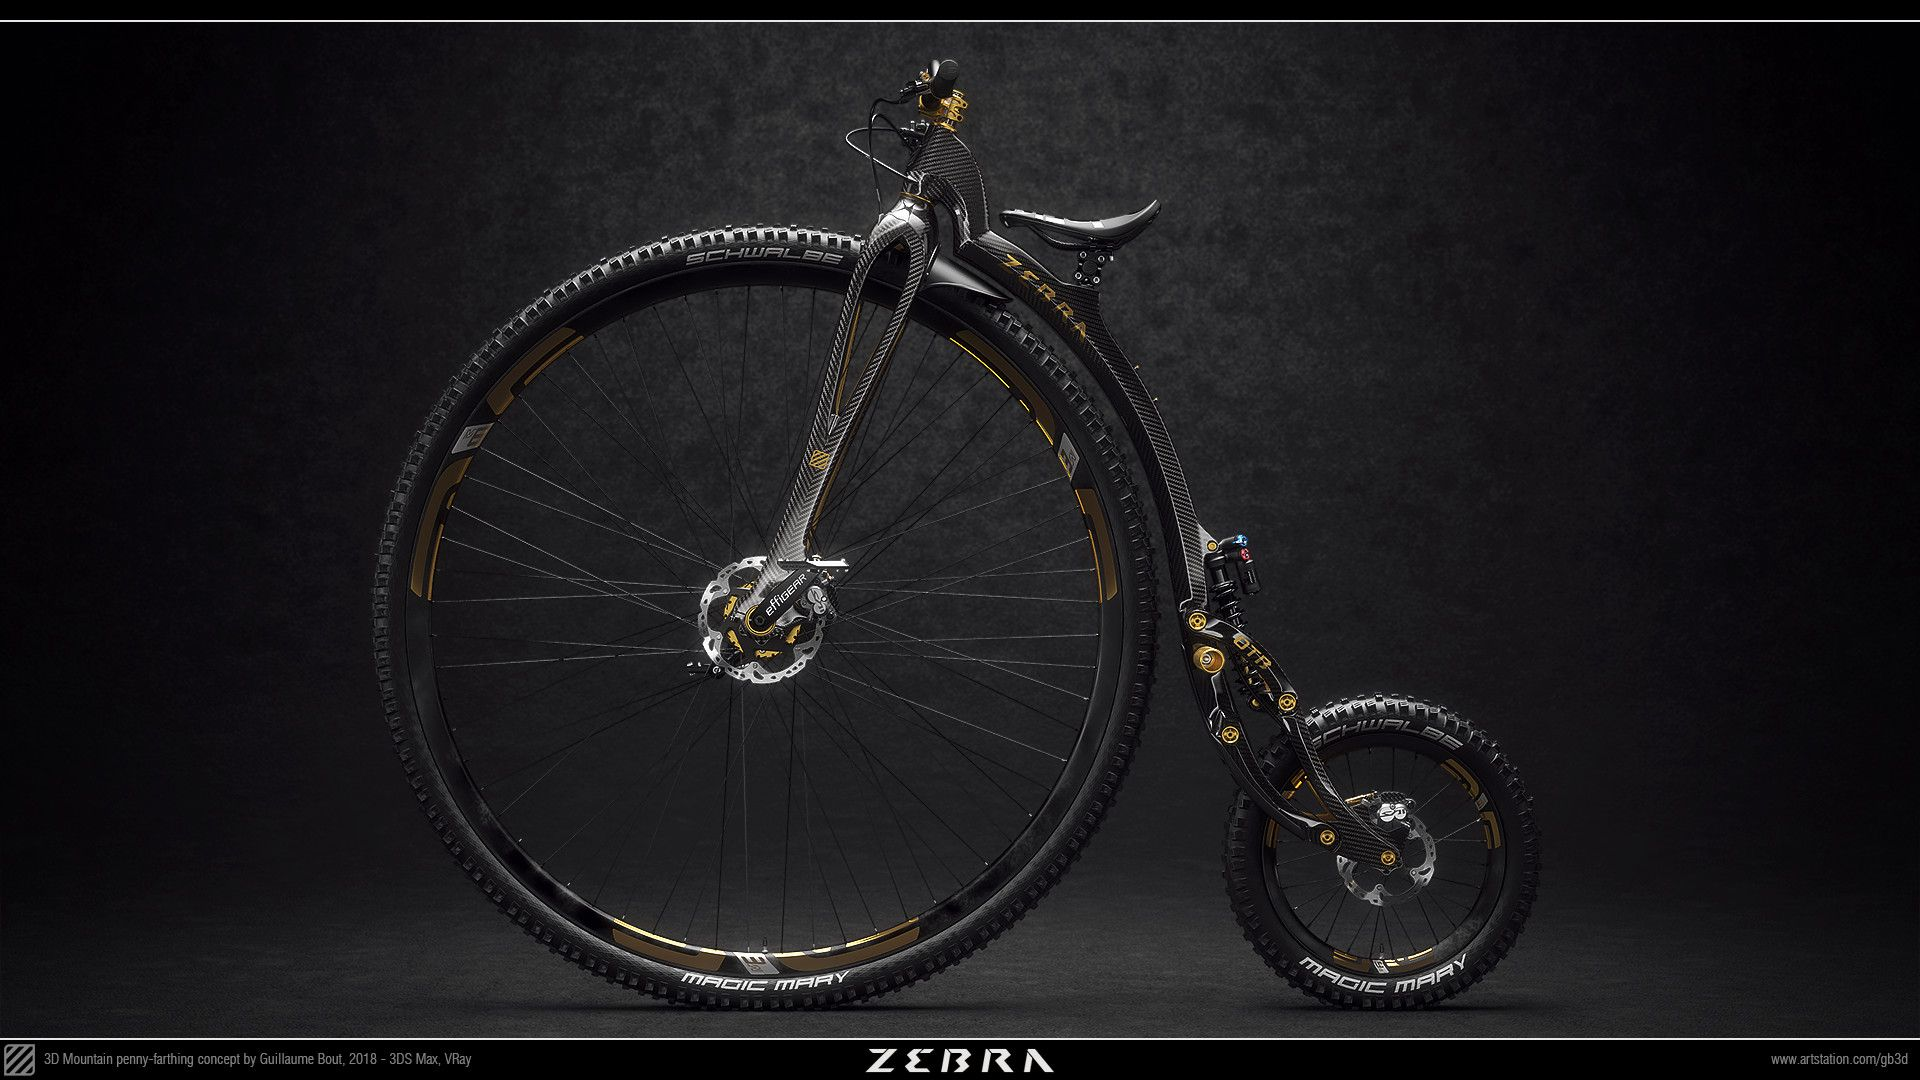 Artstation Zebra Otb 21st Century Mountain Penny Farthing Guillaume Bout Penny Farthing Bicycle Penny Farthing Bicycle